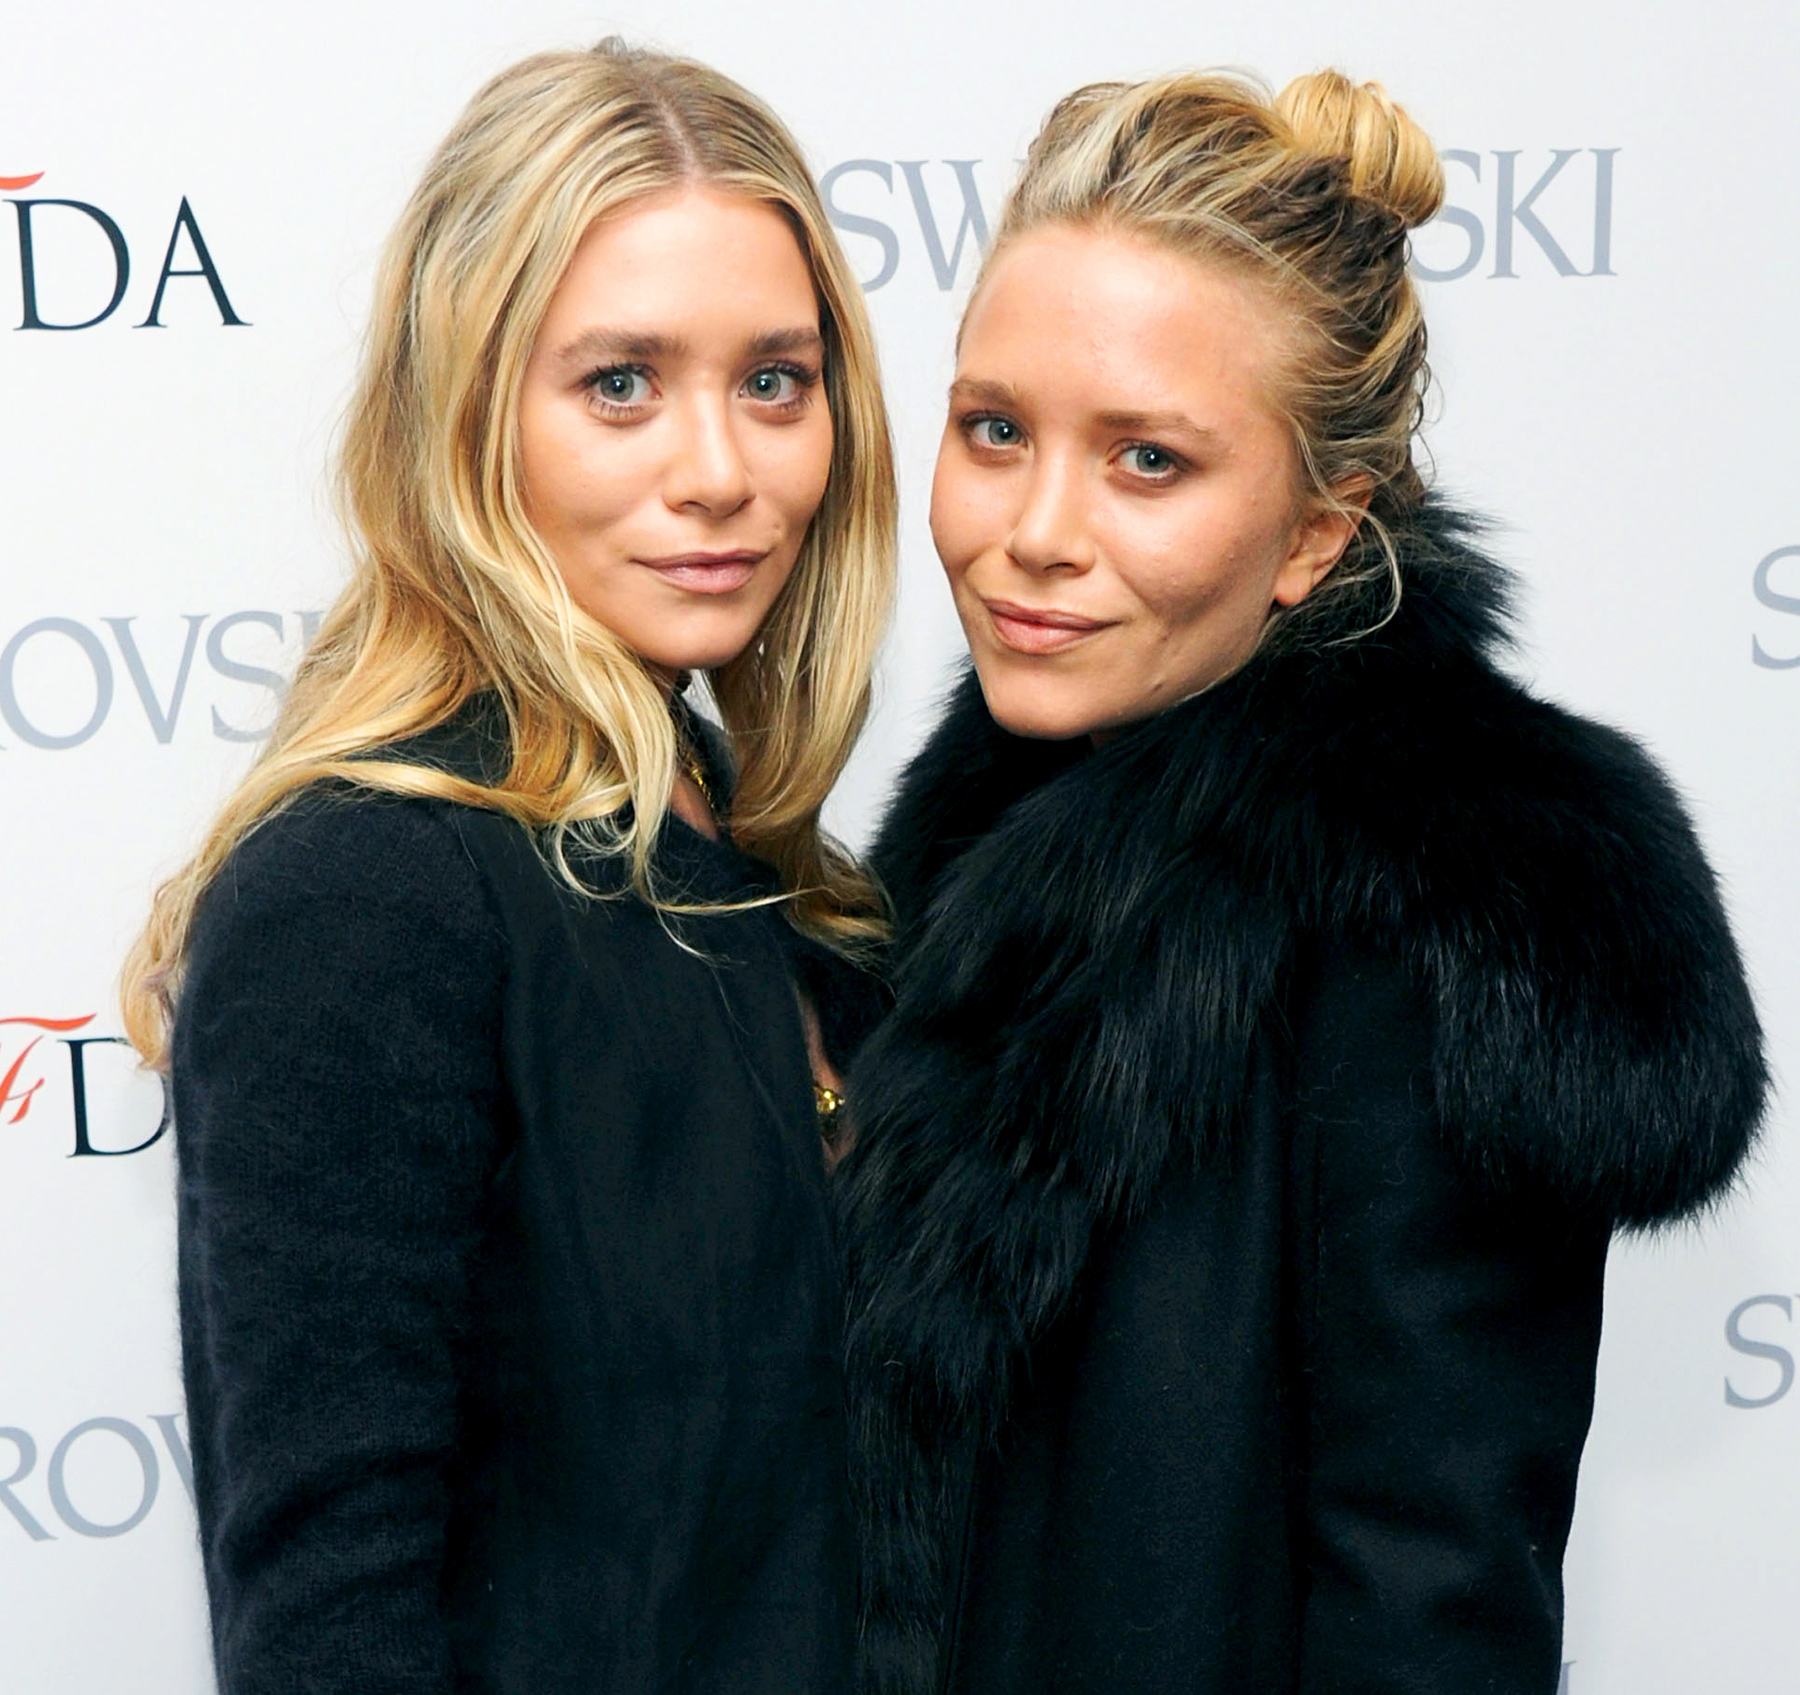 Nothing says '90s like the Olsen twins! Mary-Kate and Ashley Olsen rose to fame as the thumbs-up giving beloved Michelle Tanner in the family sitcom Full House .